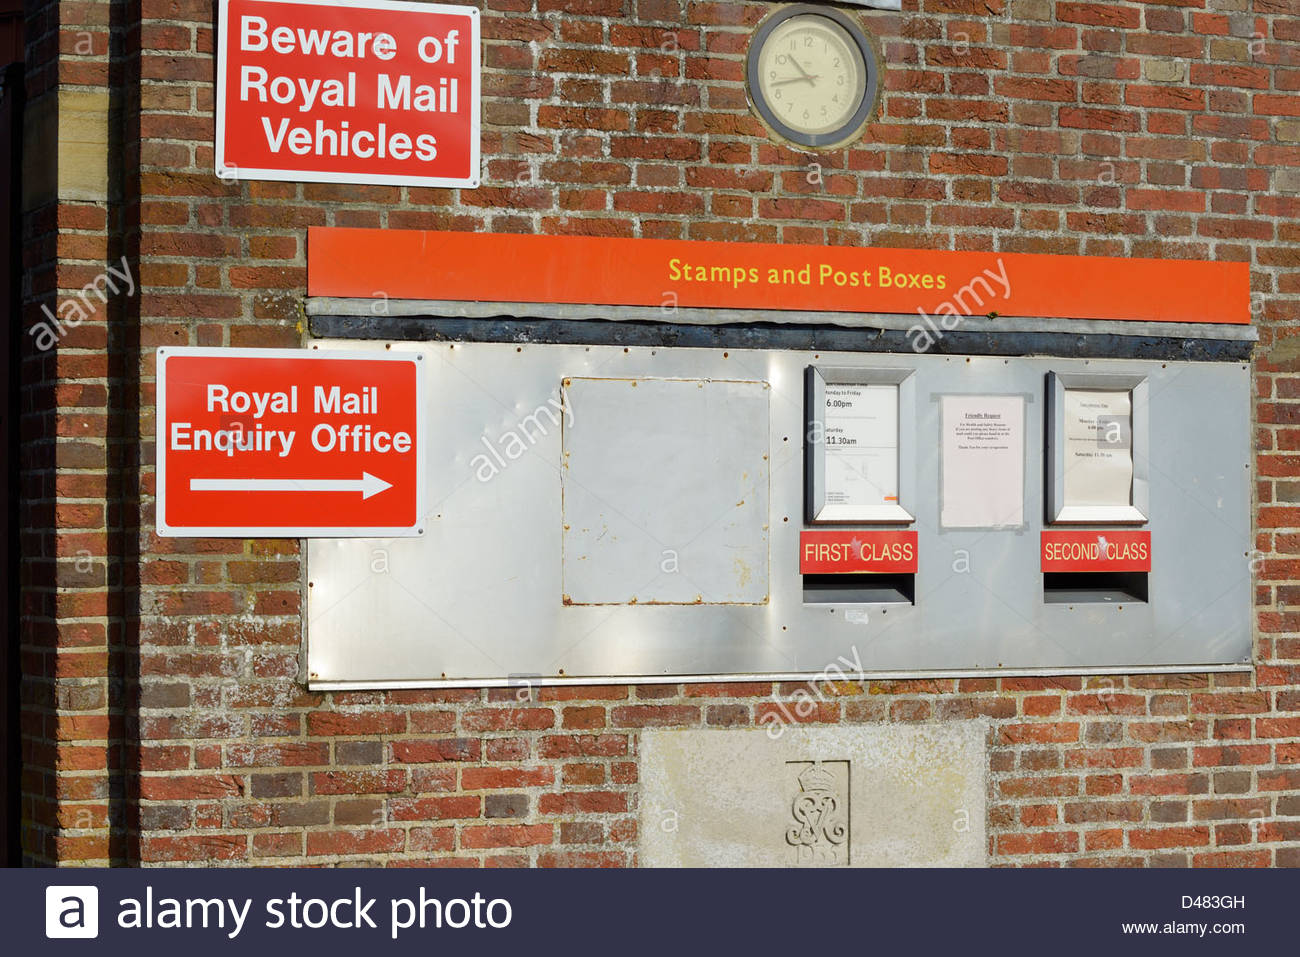 Post Office wall with postboxes, signs and clock, Blandford Forum, Dorset England UK - Stock Image